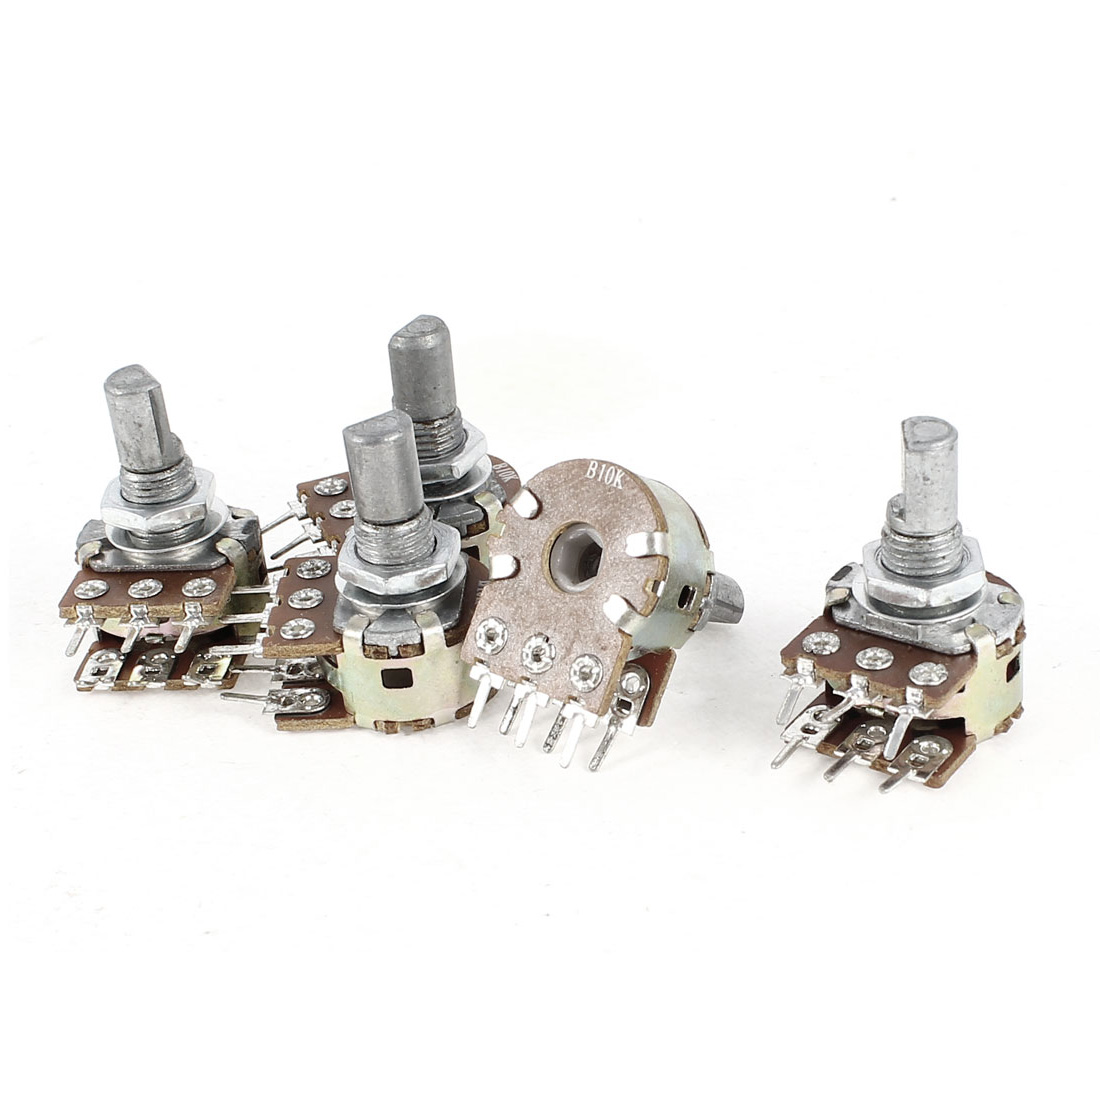 5 Pieces Type B 10K Ohm 6 Terminals Double Linear Rotary Taper Potentiometers